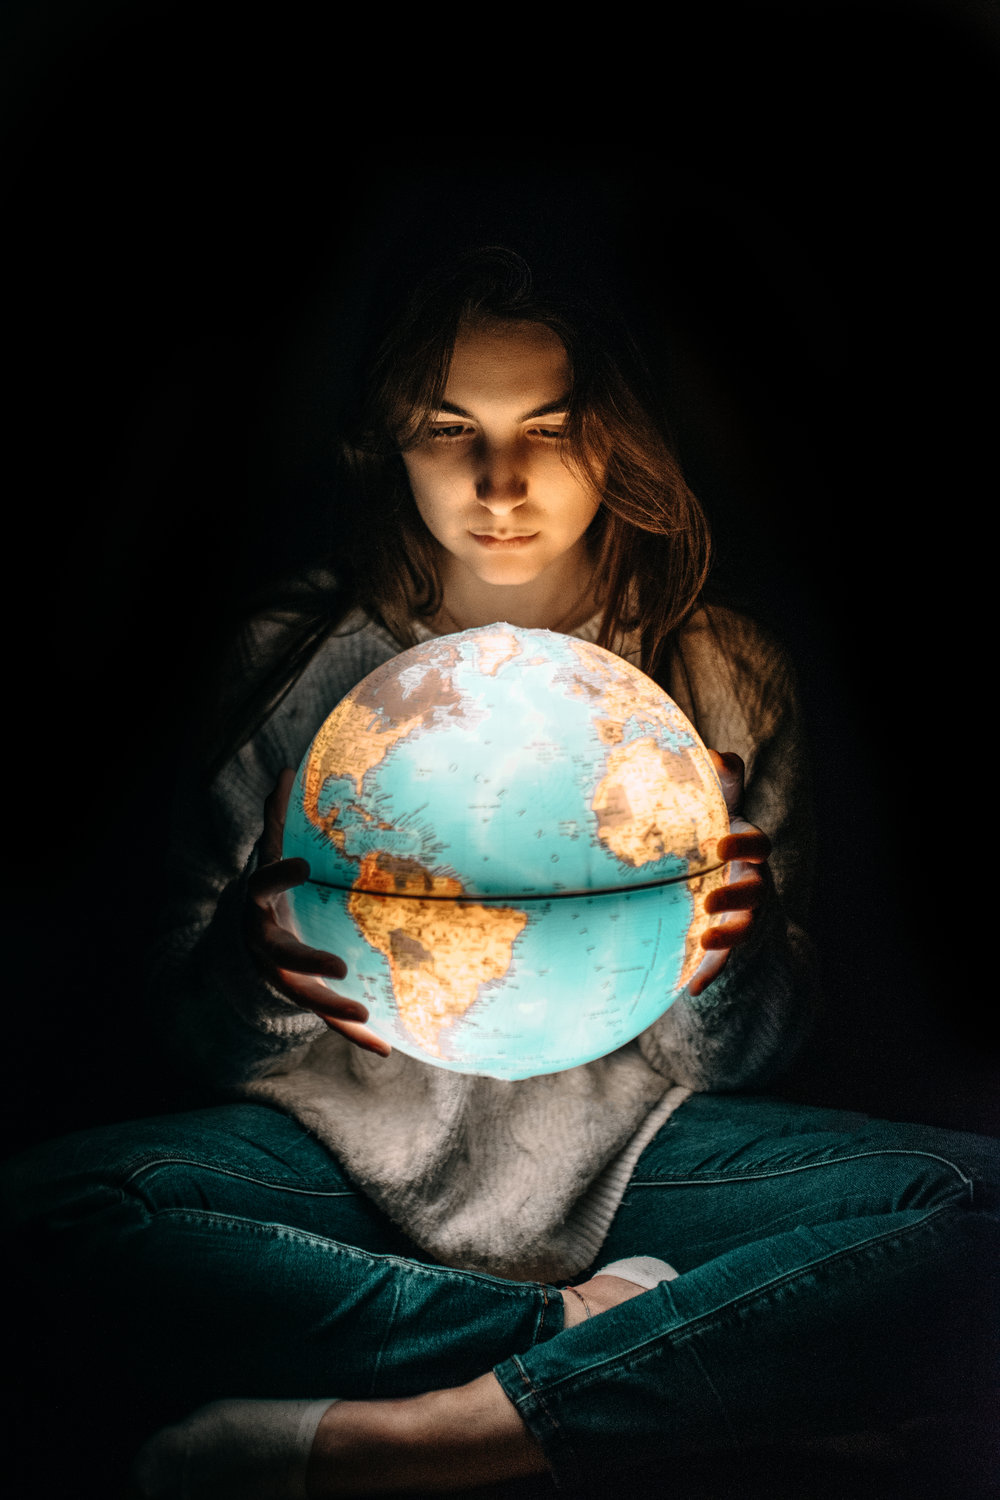 In the dream of the second attention, we live in the same world, but with a difference. We control our attention from the inside, escape the dream of the planet, and create a brand new dream: our personal dream of heaven on earth.